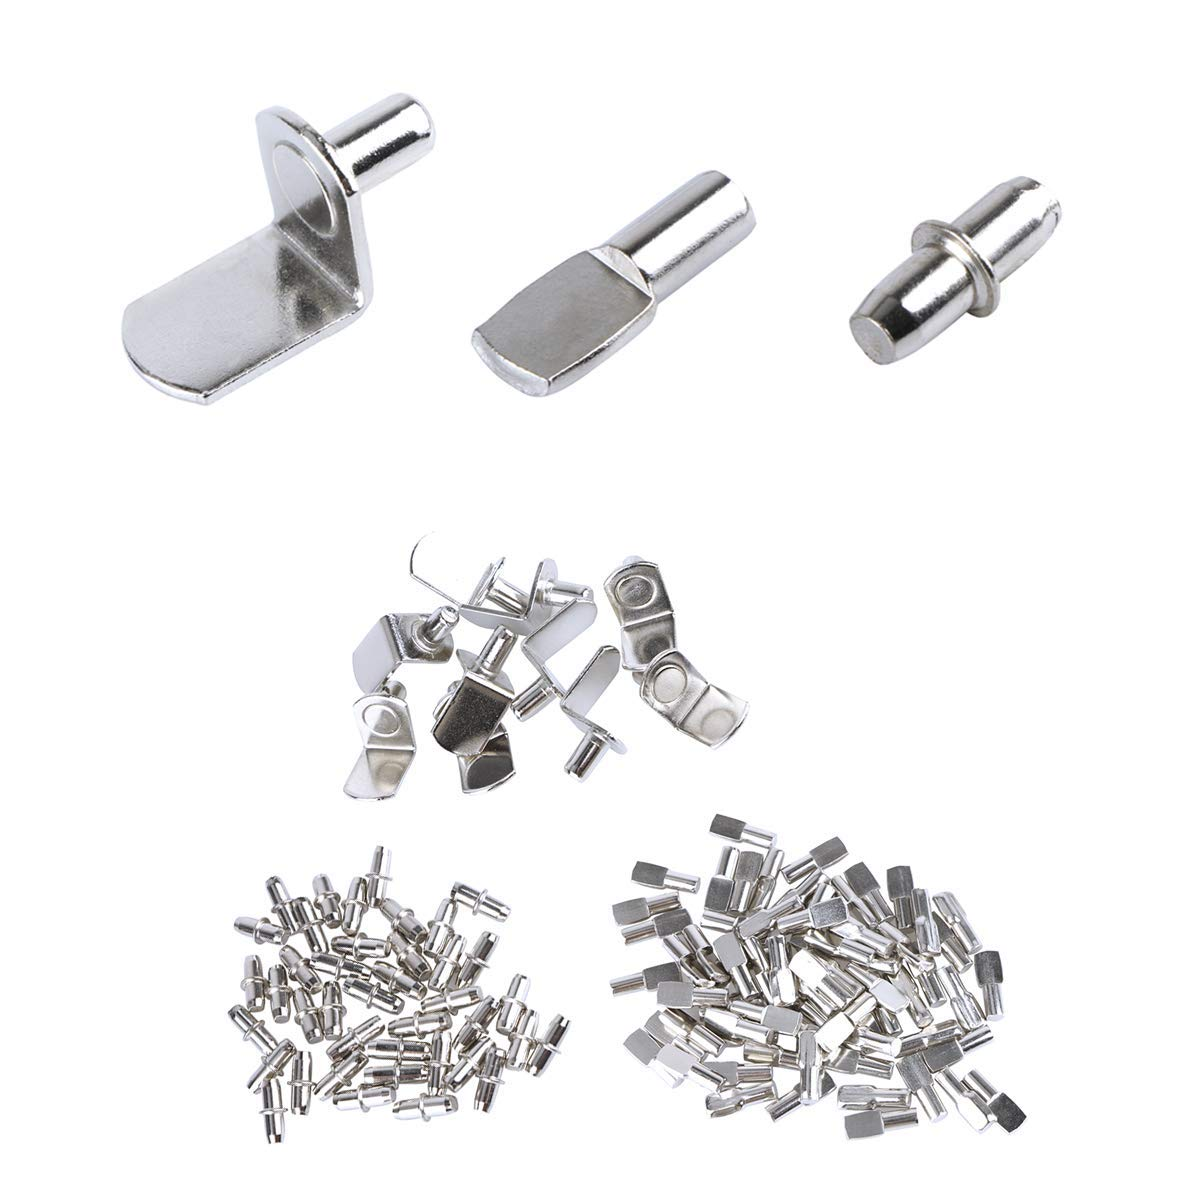 Unime 120 Pcs Shelf Bracket Pegs Stainless Steel Nickel Plated Cabinet Furniture Shelf Pins Support 3 Styles